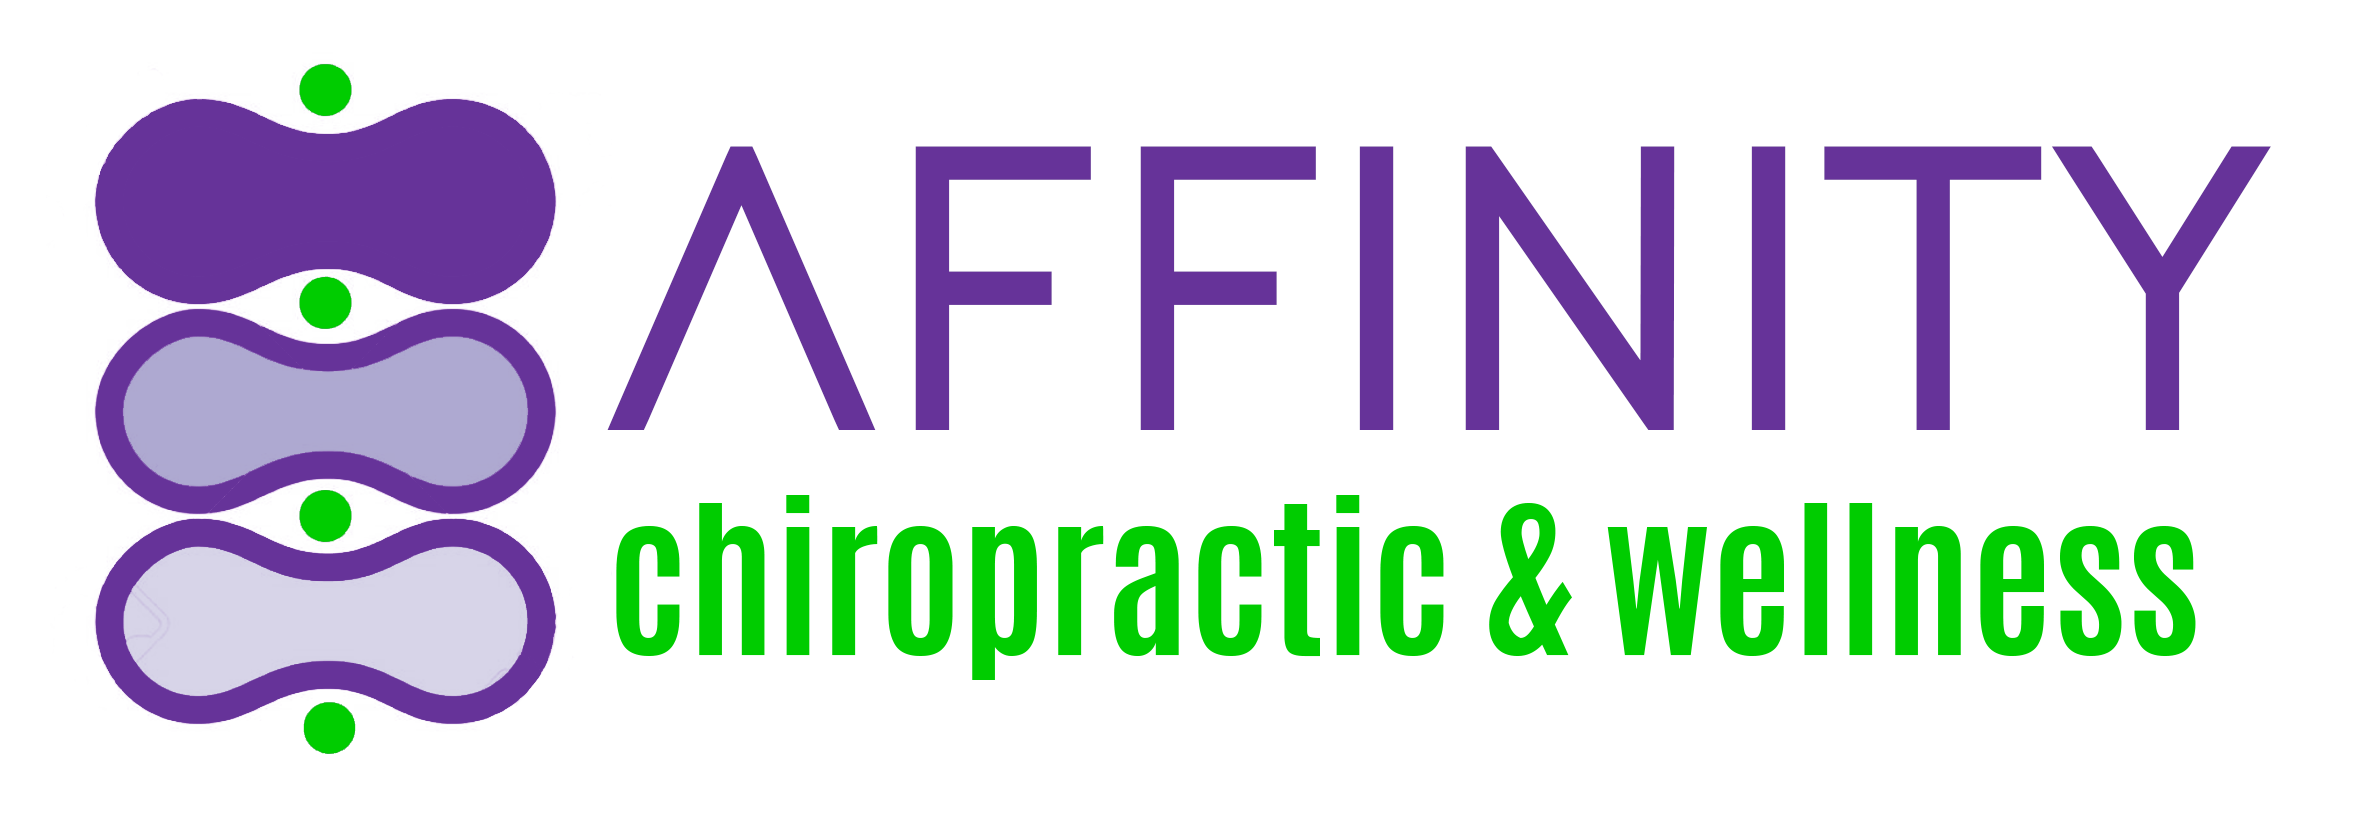 Affinity Chiropractic & Wellness